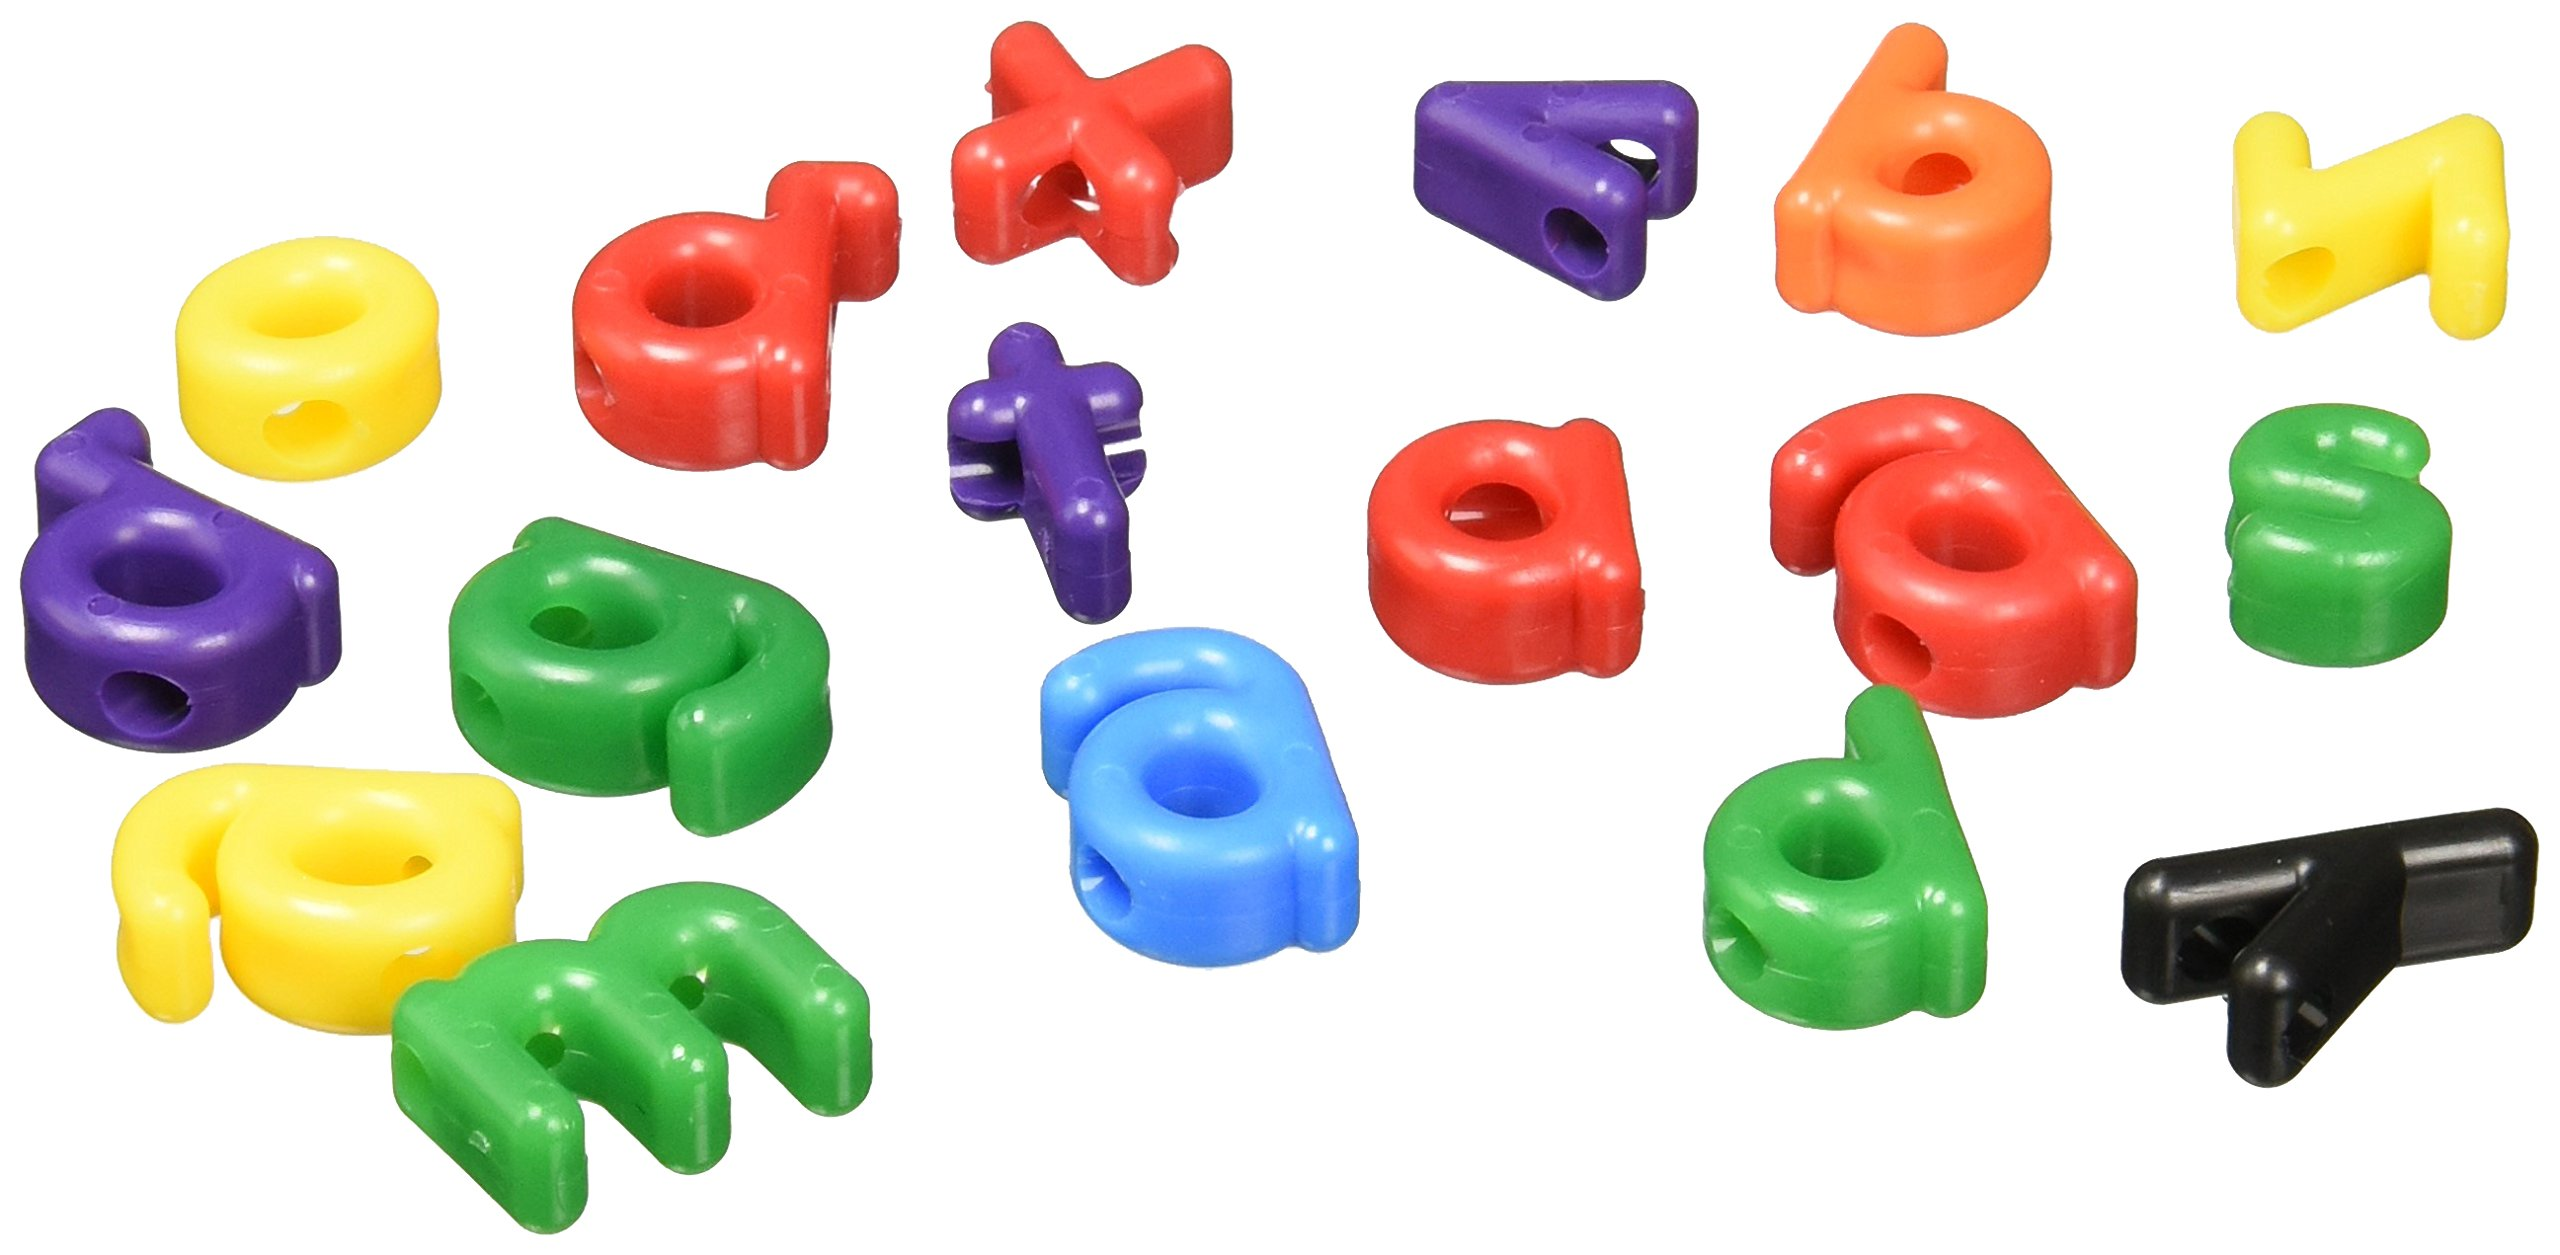 Roylco Lowercase Letter Bead, Assorted Colors, Pack of 288 by Roylco